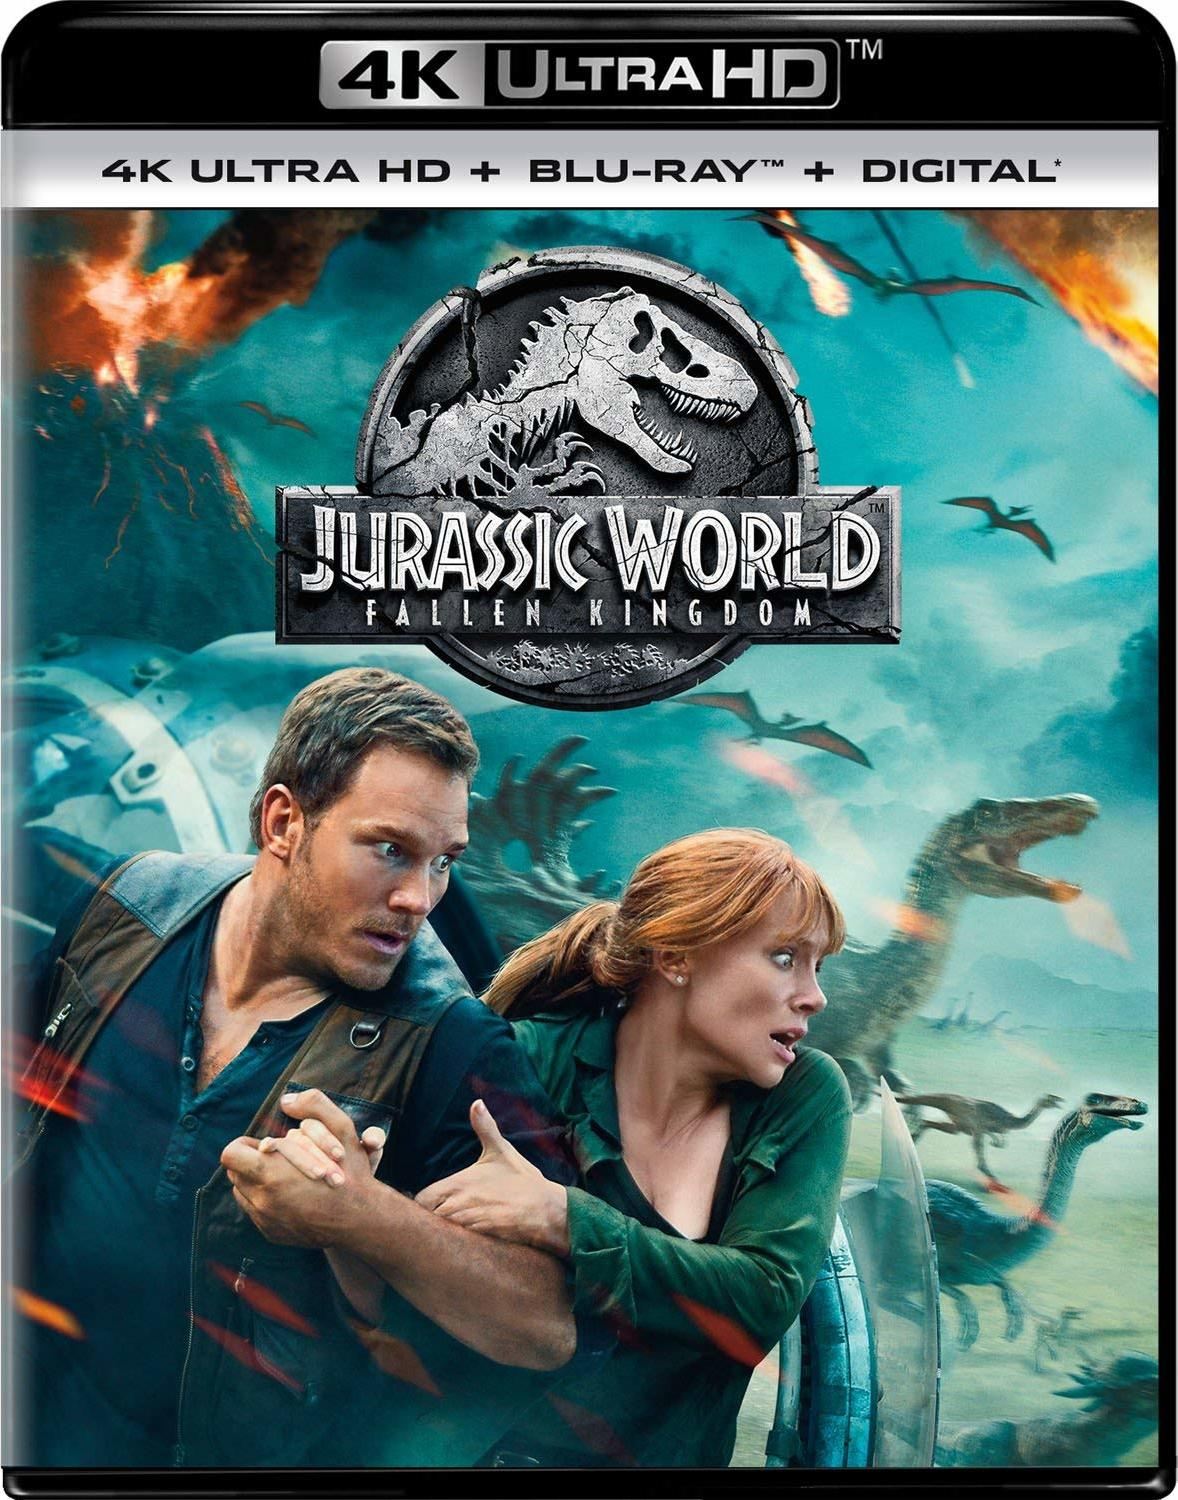 Jurassic World 2: Fallen Kingdom 4K (2018) Ultra HD Blu-ray